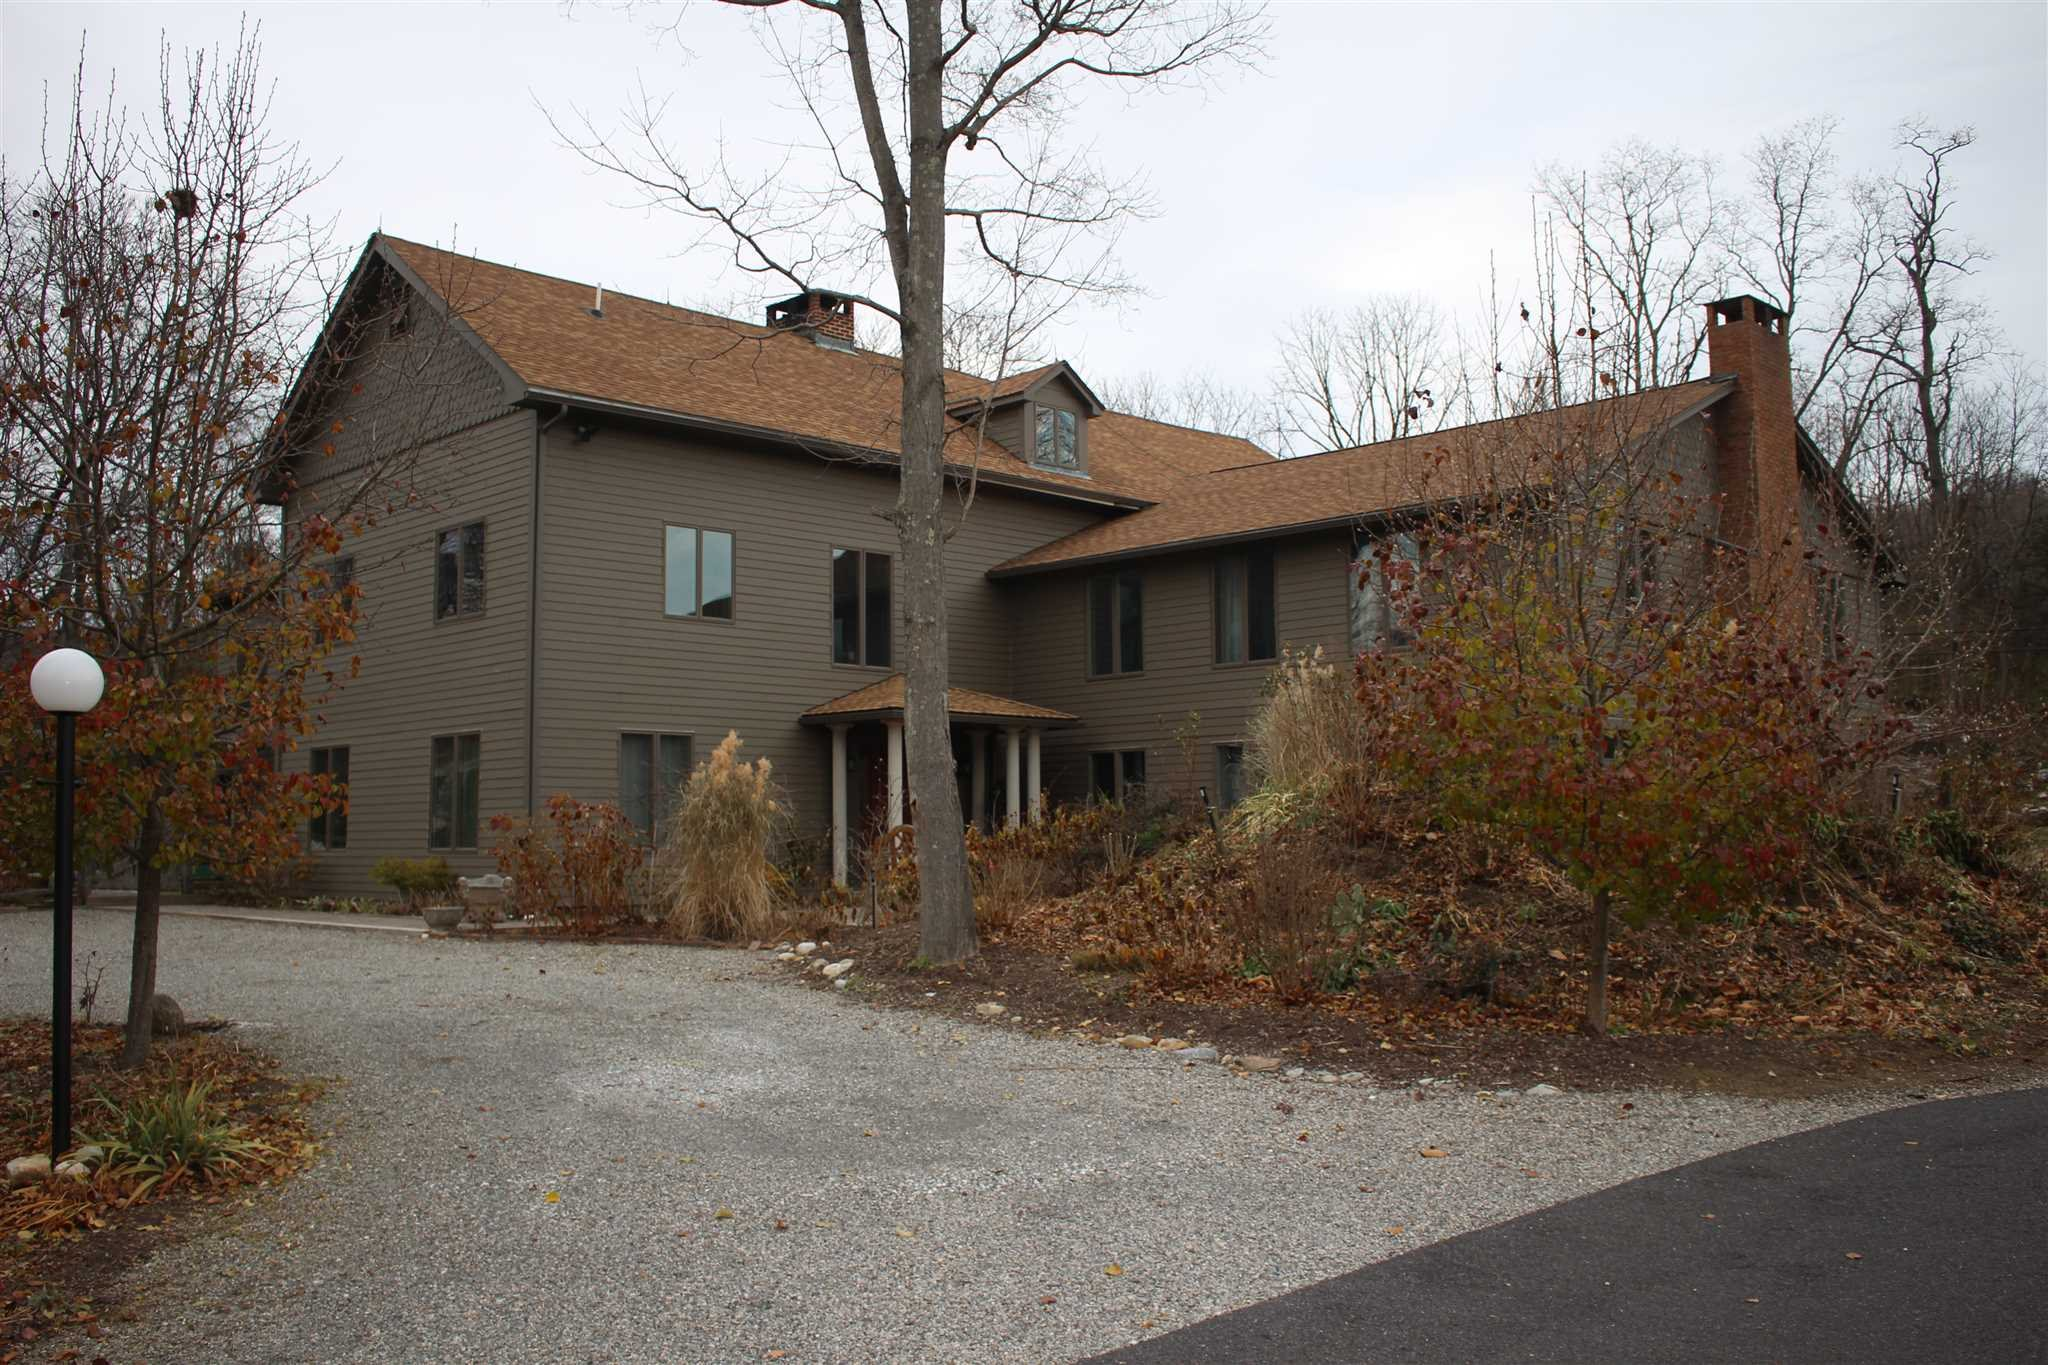 Single Family Home for Sale at 486 LEEDSVILLE ROAD 486 LEEDSVILLE ROAD Amenia, New York 12501 United States